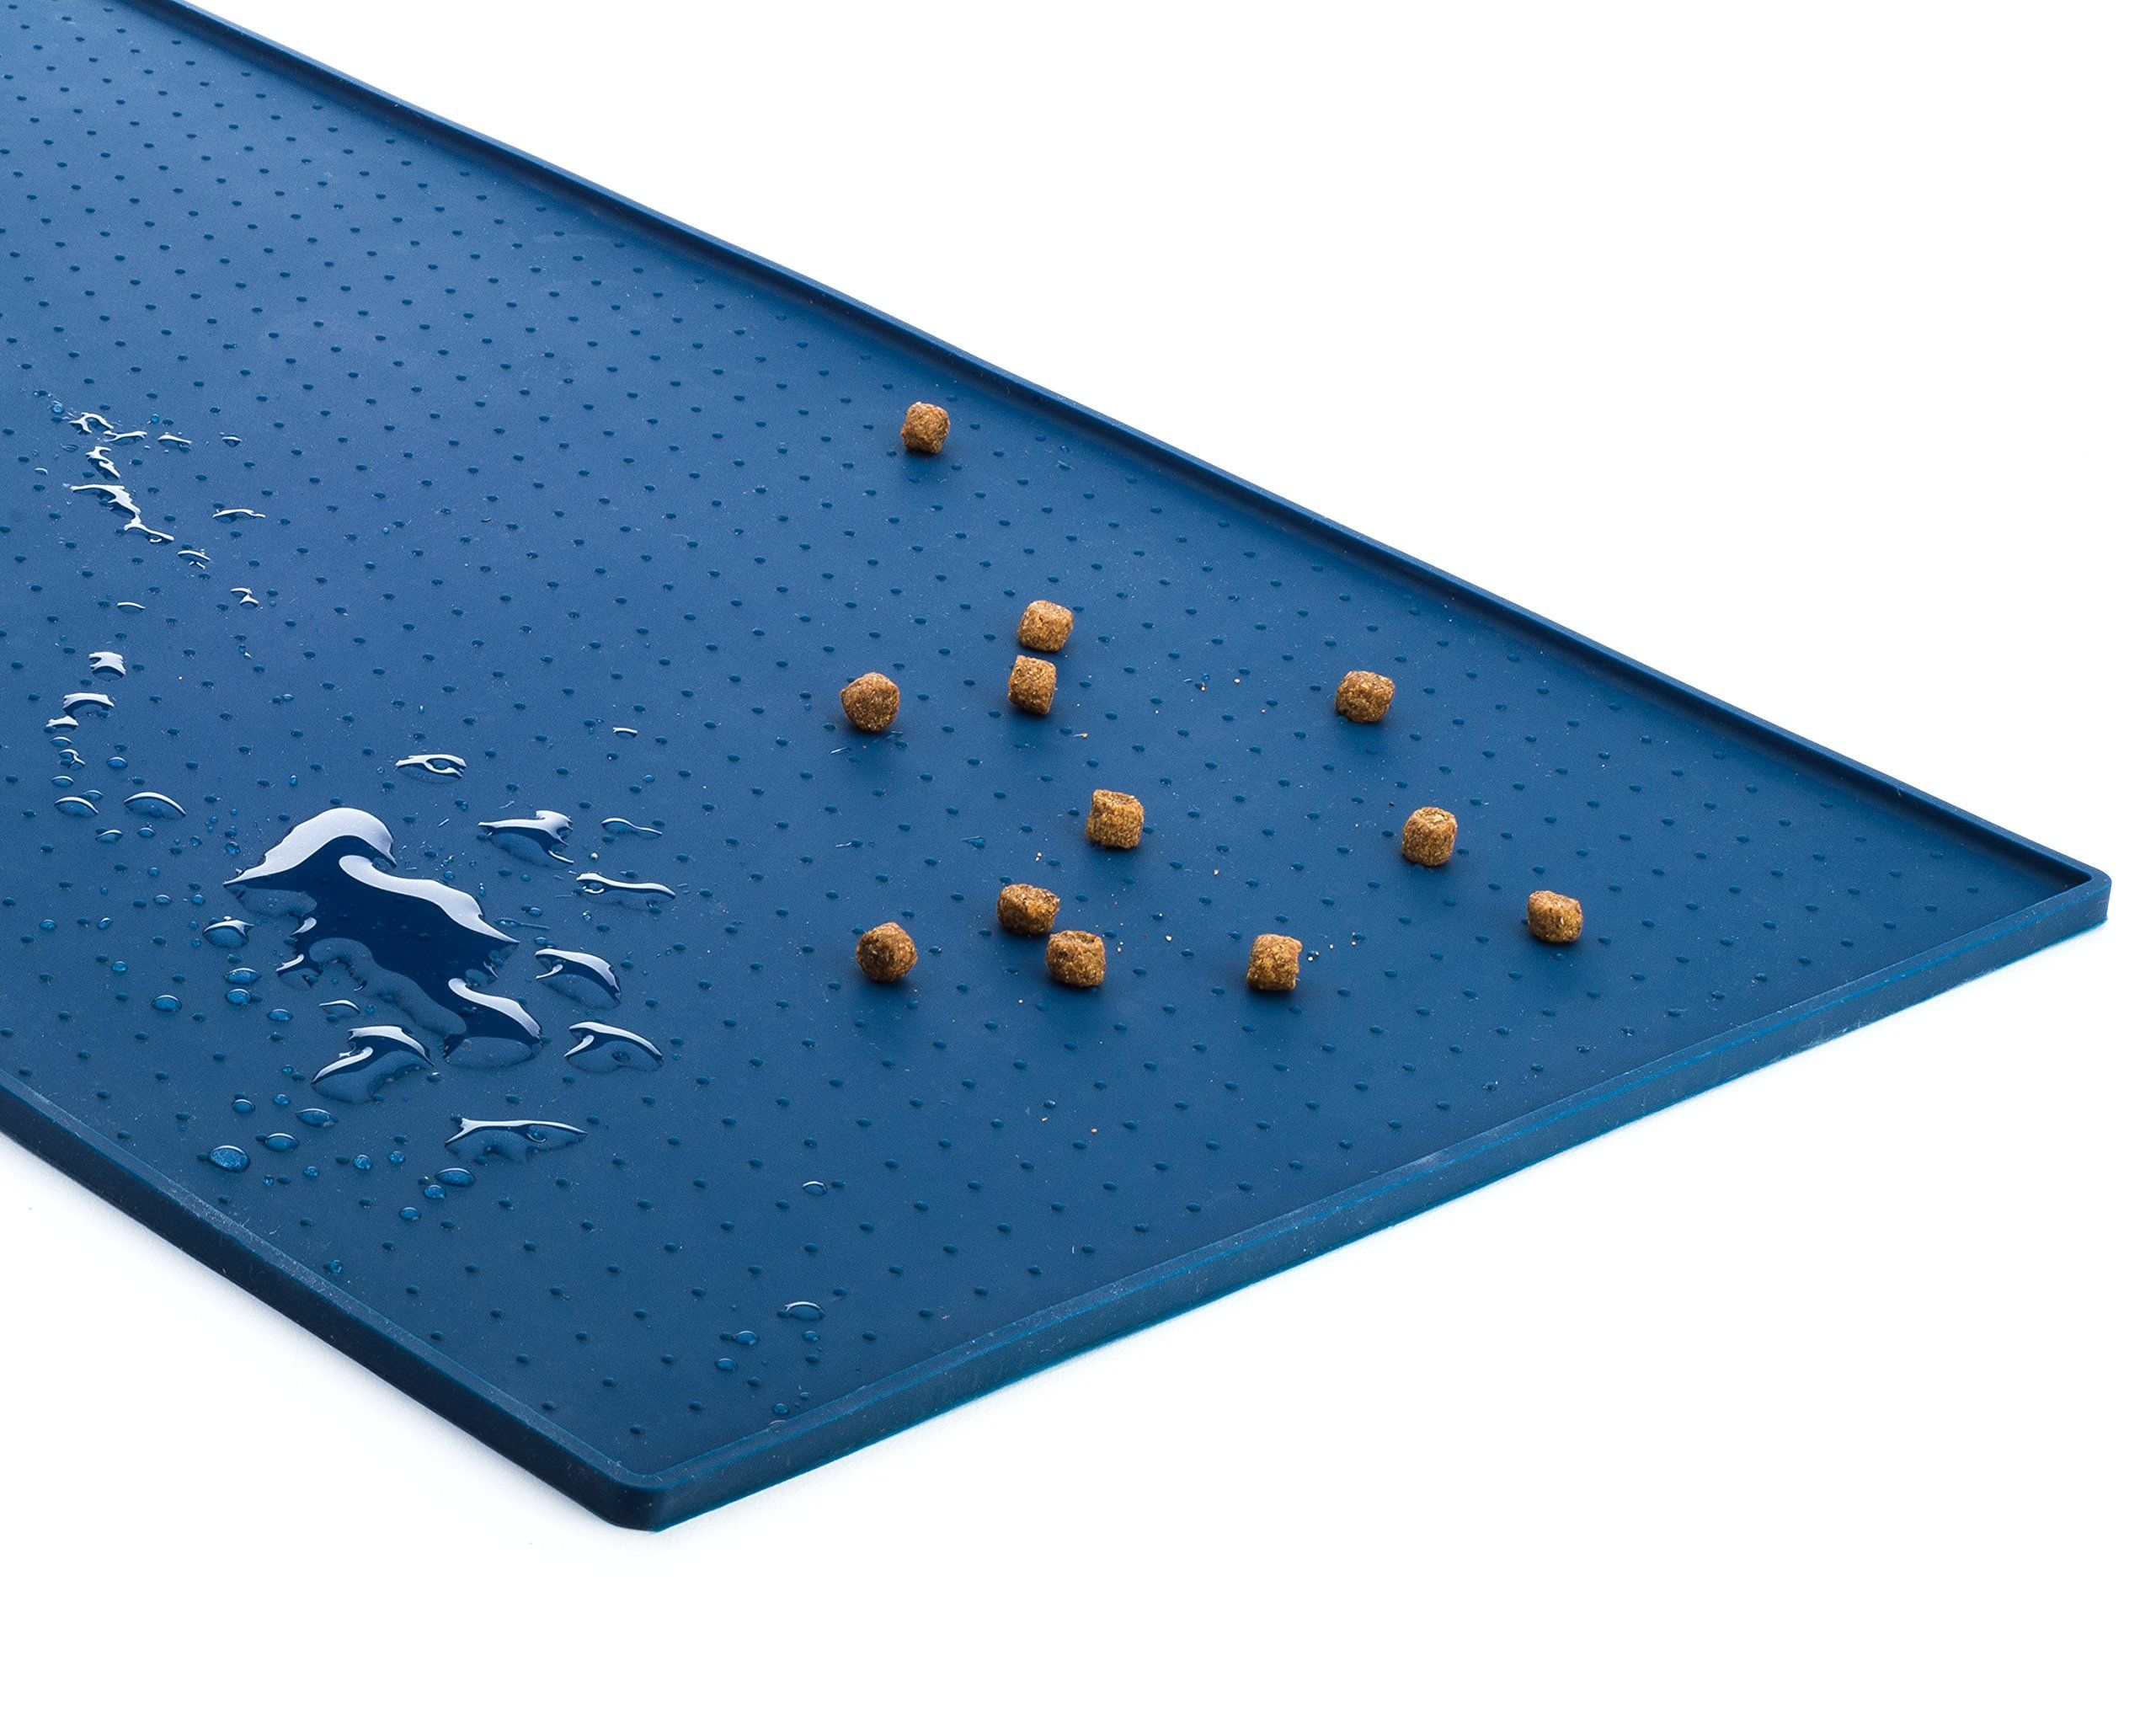 free s grade bpa peanuts floors x mr and flexible from your pet clean feeding to mat easy silicone premium fda protects food itm peanut